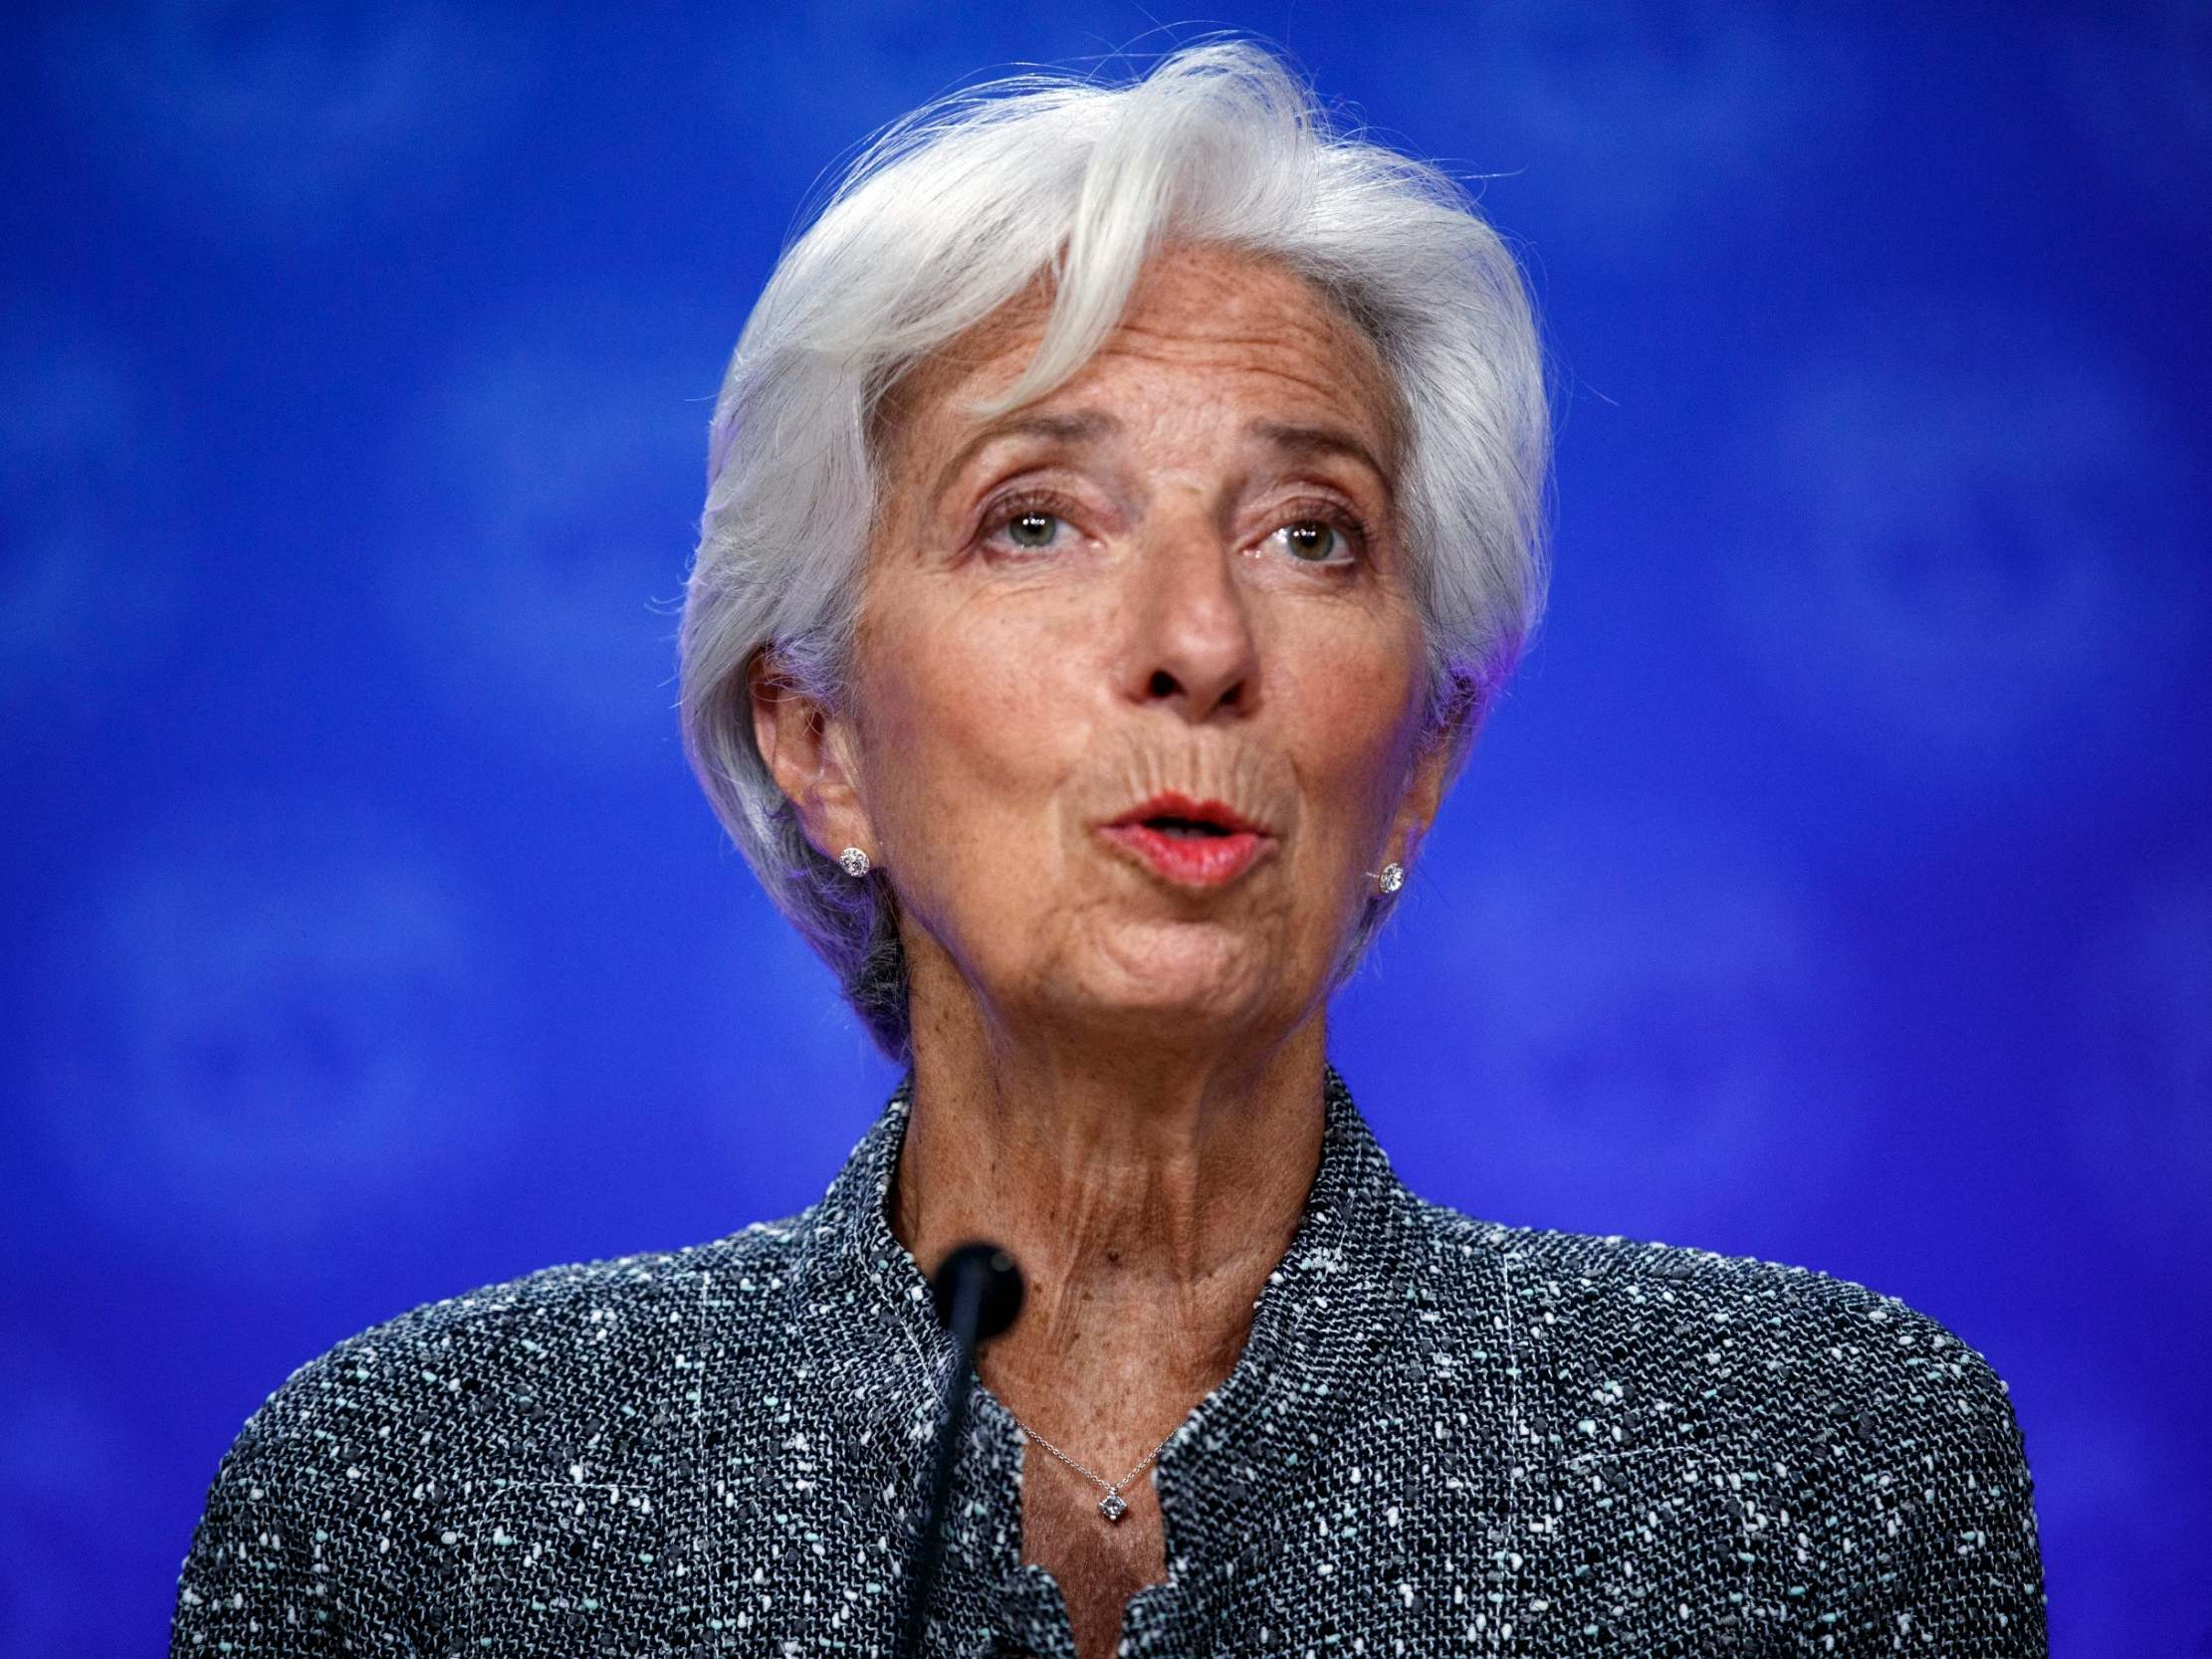 Christine Lagarde was the first woman to lead the IMF, but that doesn't mean she should be admired